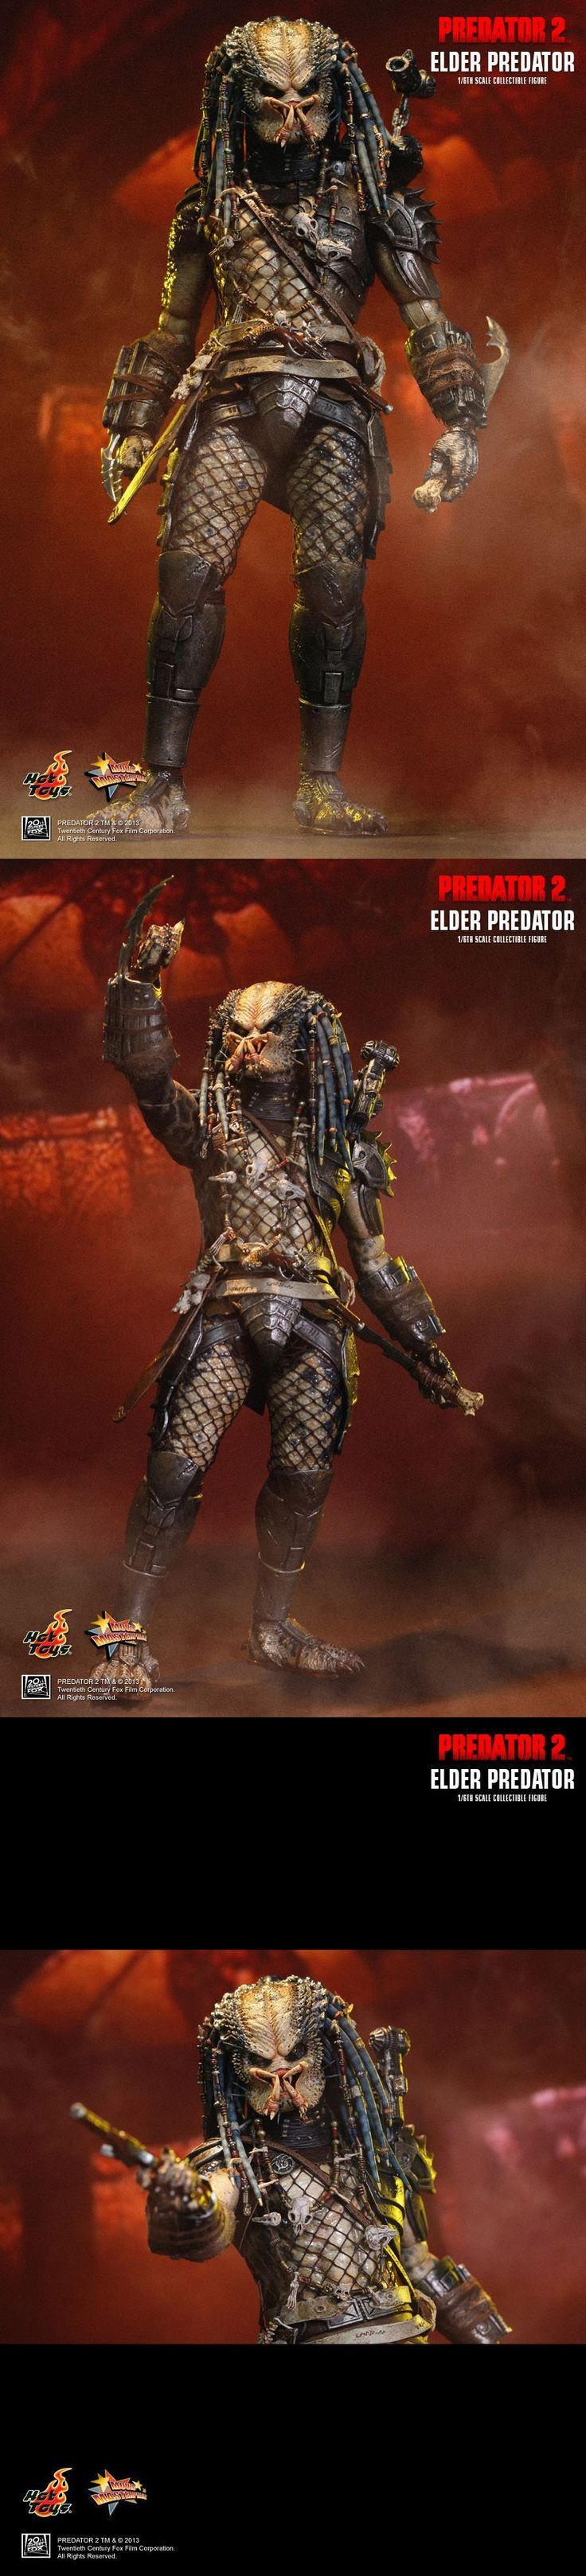 Toys And Games: Hot Toys - Predator 2 Elder Predator 2.0 - 1:6 Figure - Sealed In Brown Box BUY IT NOW ONLY: $244.97